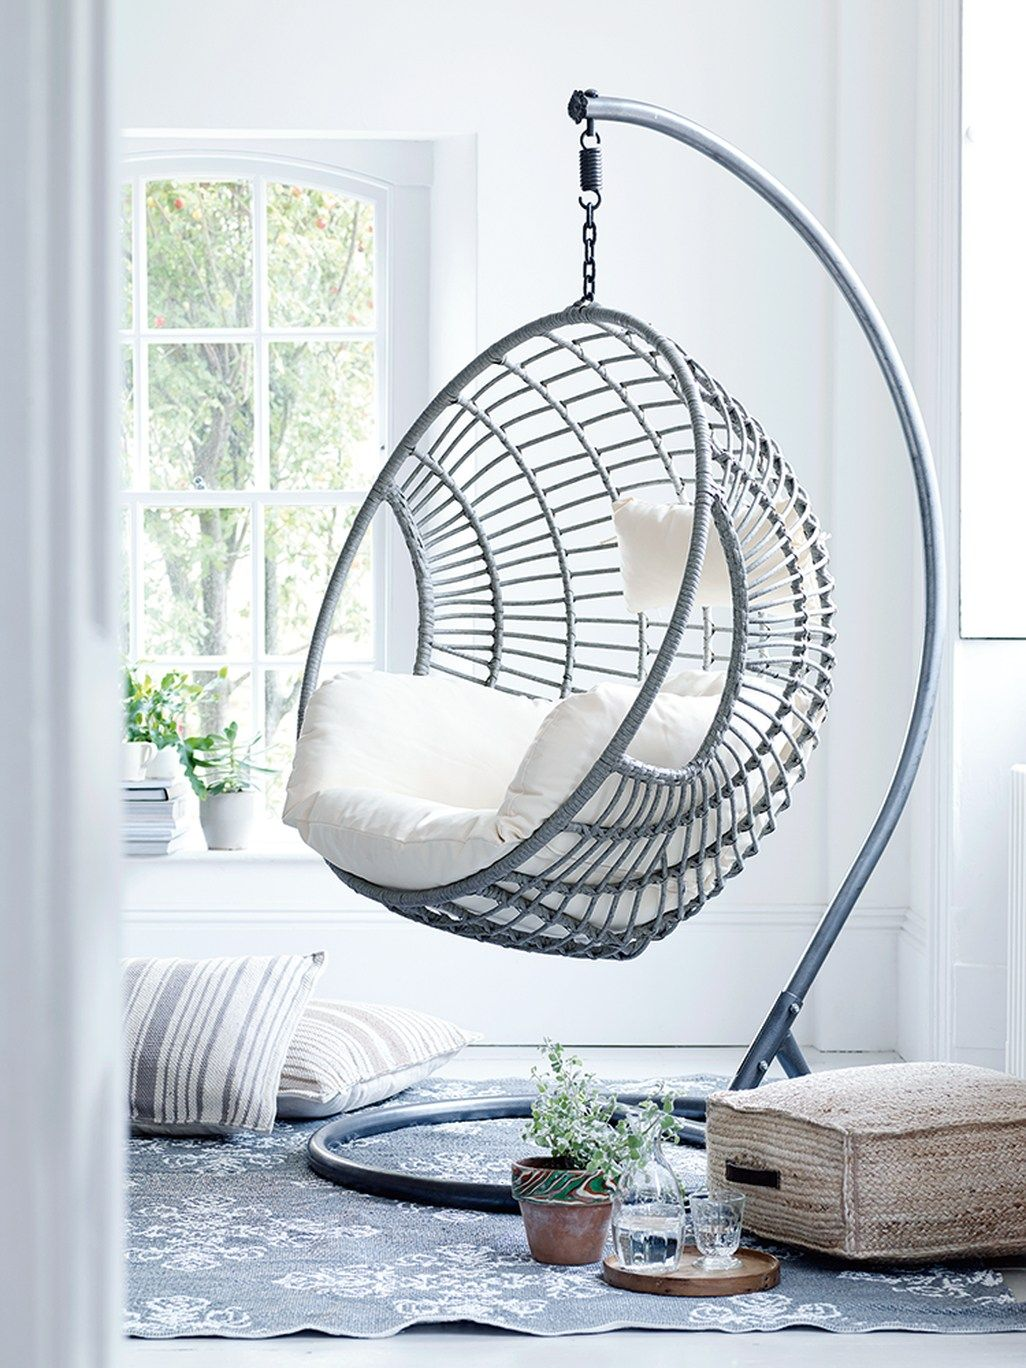 45 Modern Hanging Swing Chair Stand Indoor Decor Inspirational Pin Hanging Chair Indoor Hanging Chair Outdoor Indoor Swing Chair